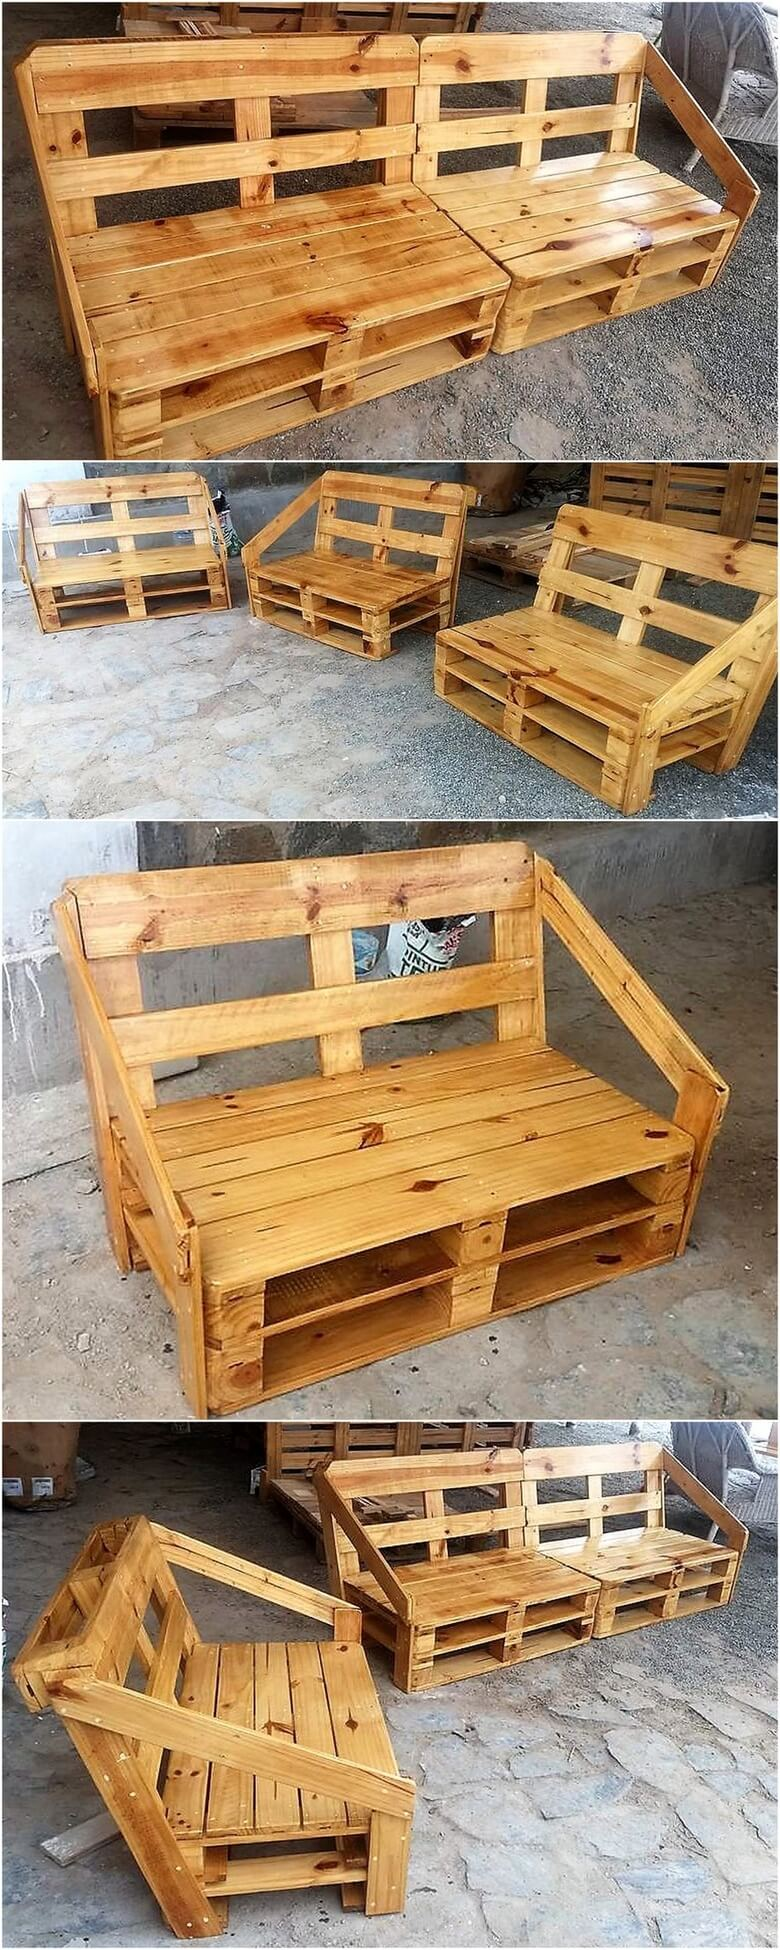 50 Awesome Wood Pallet Ideas for This Summer | Pallet Ideas - Part 6